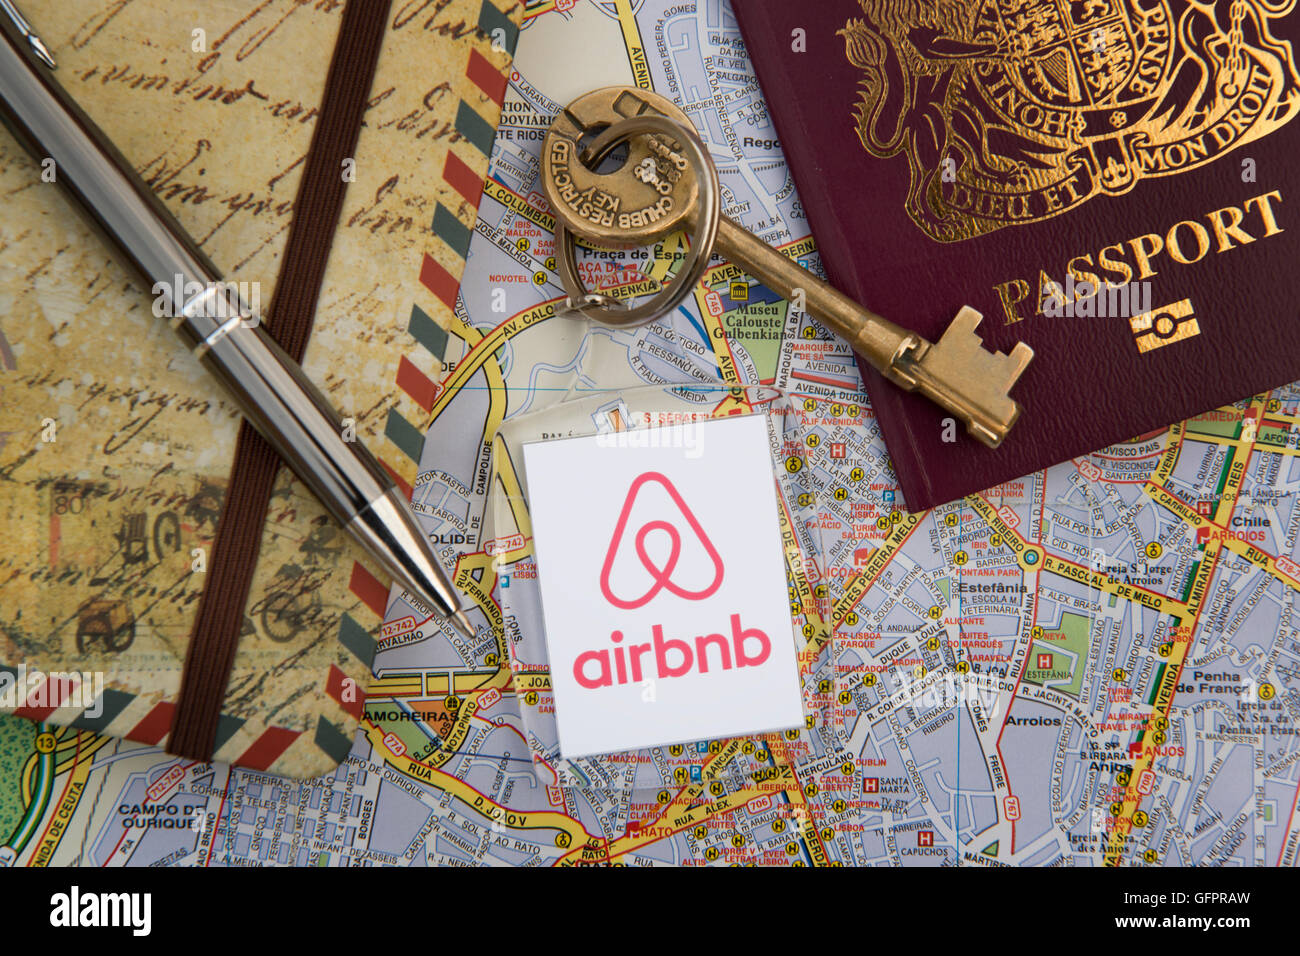 An Airbnb branded key fob with a British passport, travel journal, pen and city street map (Editorial use only). - Stock Image